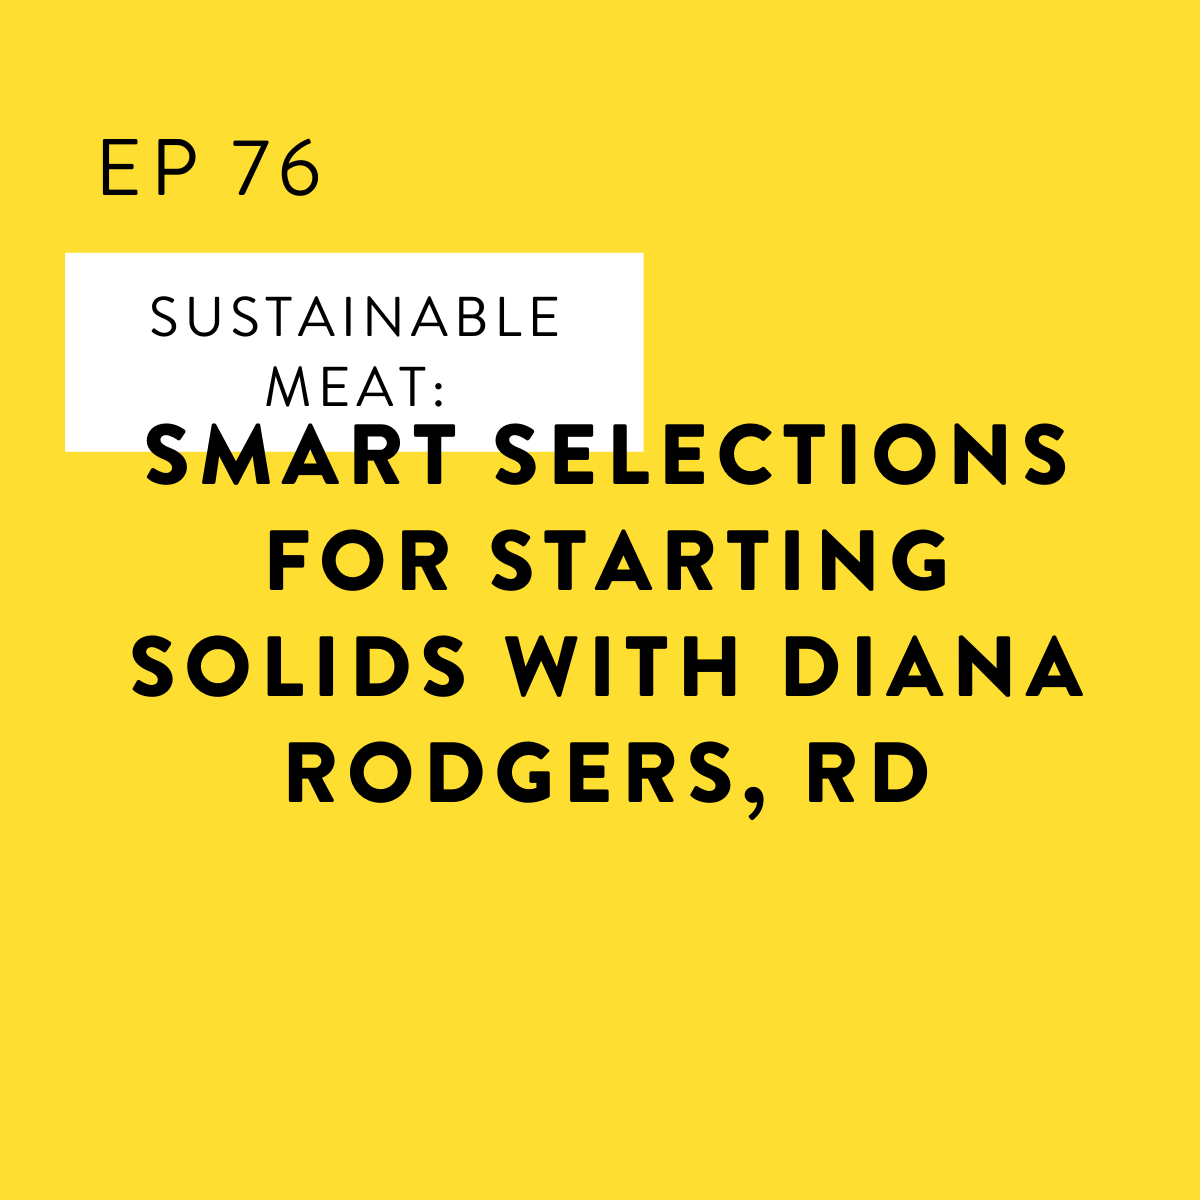 Sustainable Meat: Smart Selections for Starting Solids with Diana Rodgers, RD